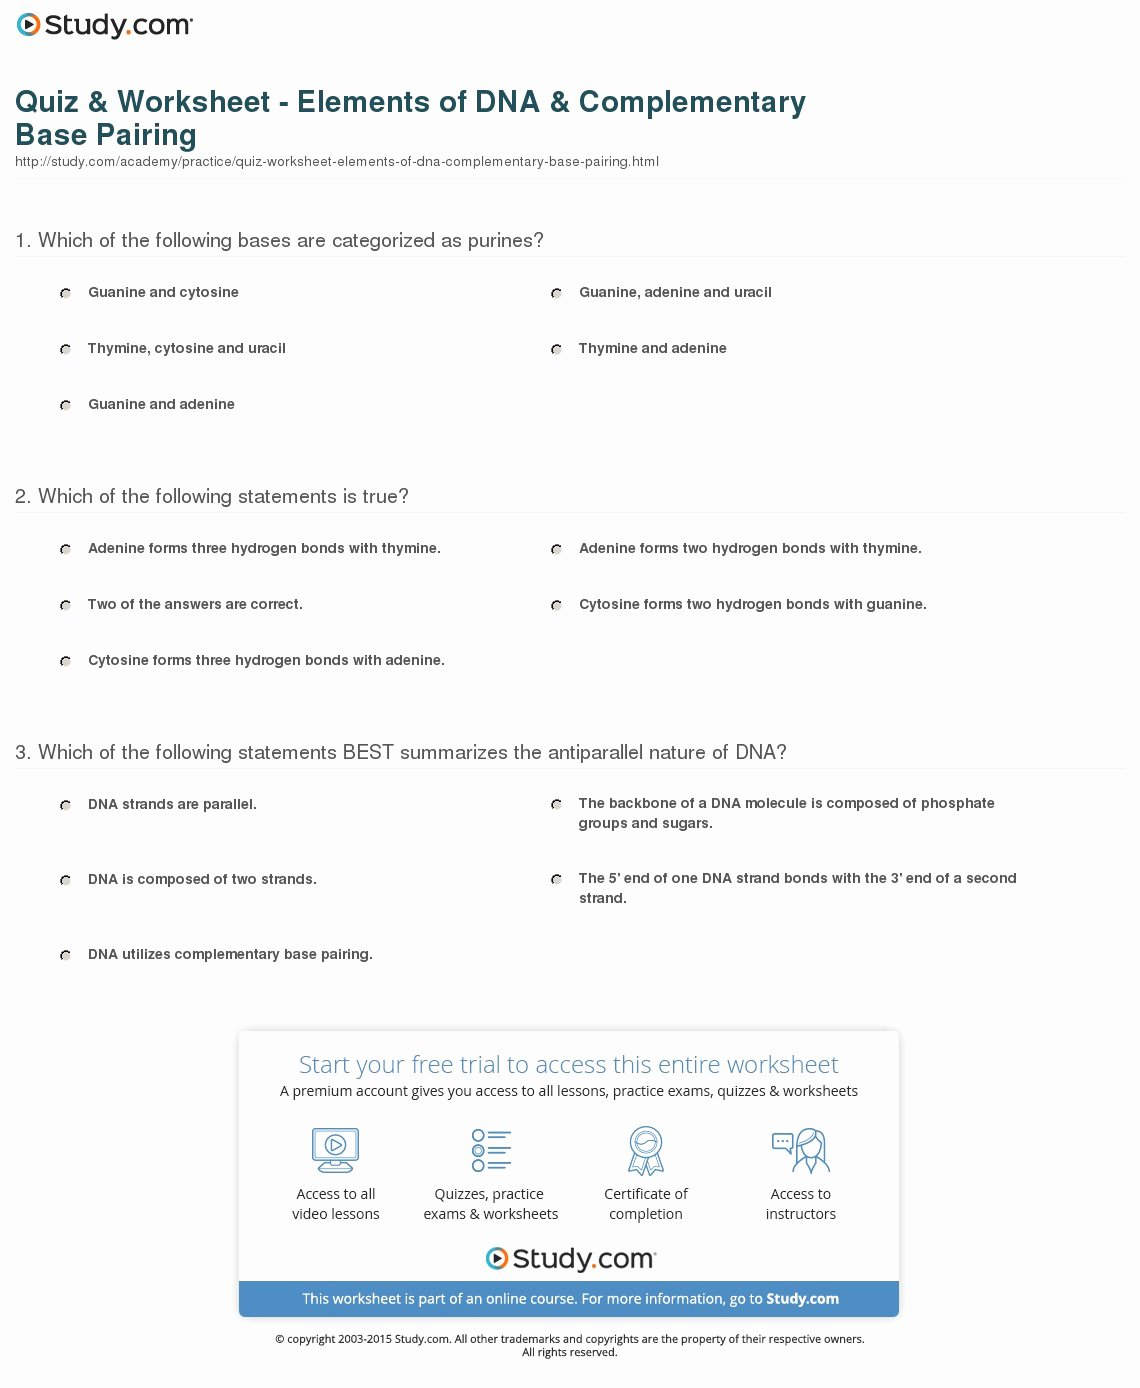 Dna Base Pairing Worksheet Answers Lovely Quiz & Worksheet Elements Of Dna & Plementary Base